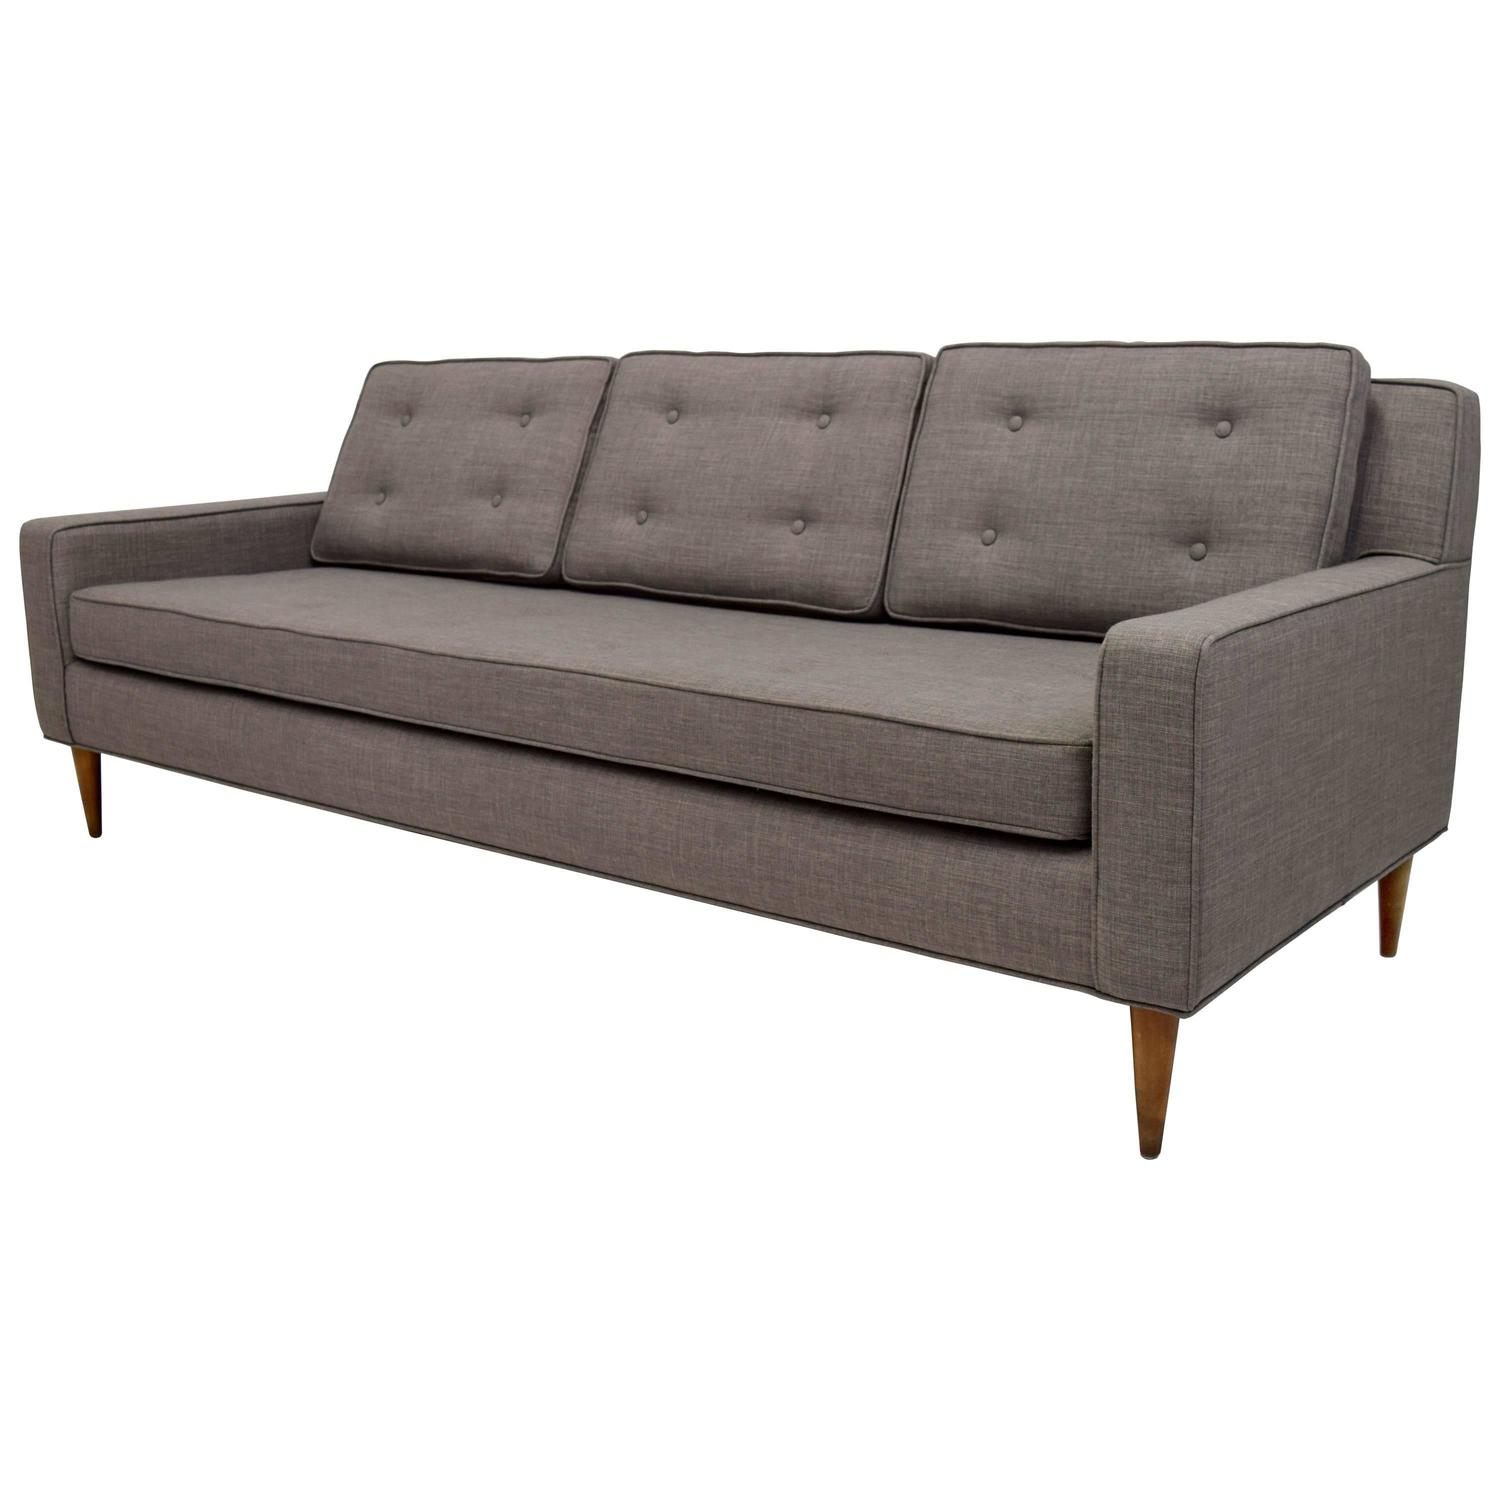 mid century button tufted sofa in paul mccobb style for On tufted couches for sale